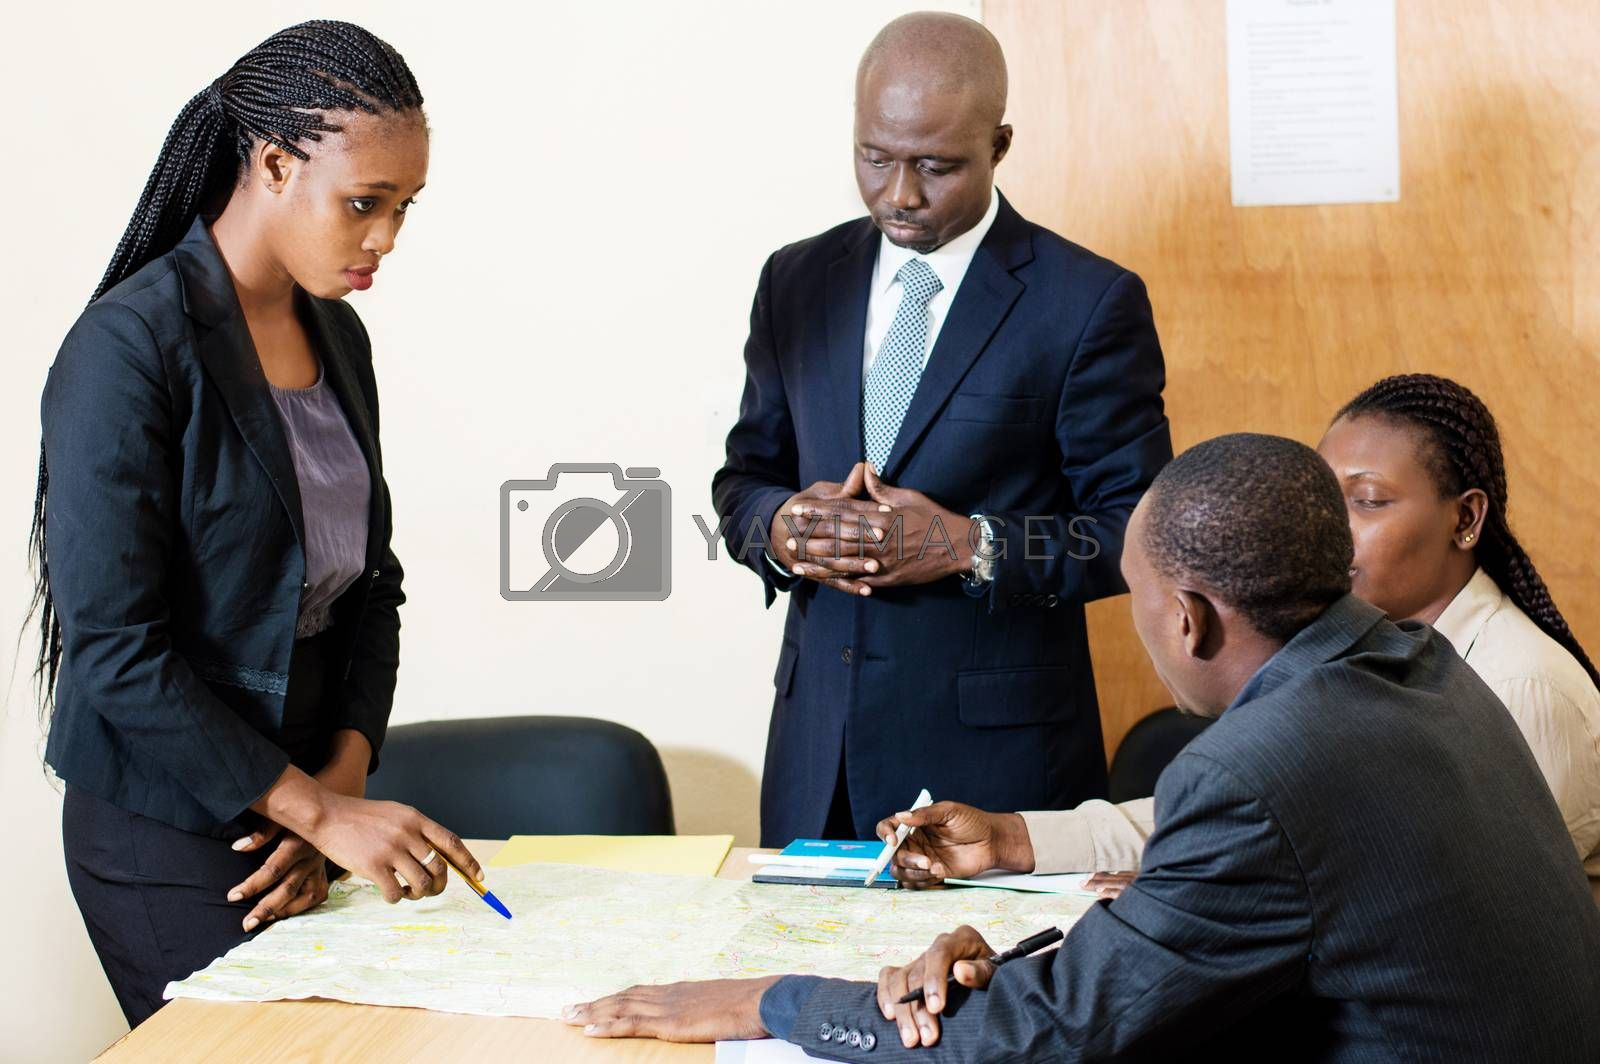 Young businesswoman shows her colleagues the different ways on the card placed in front of them.